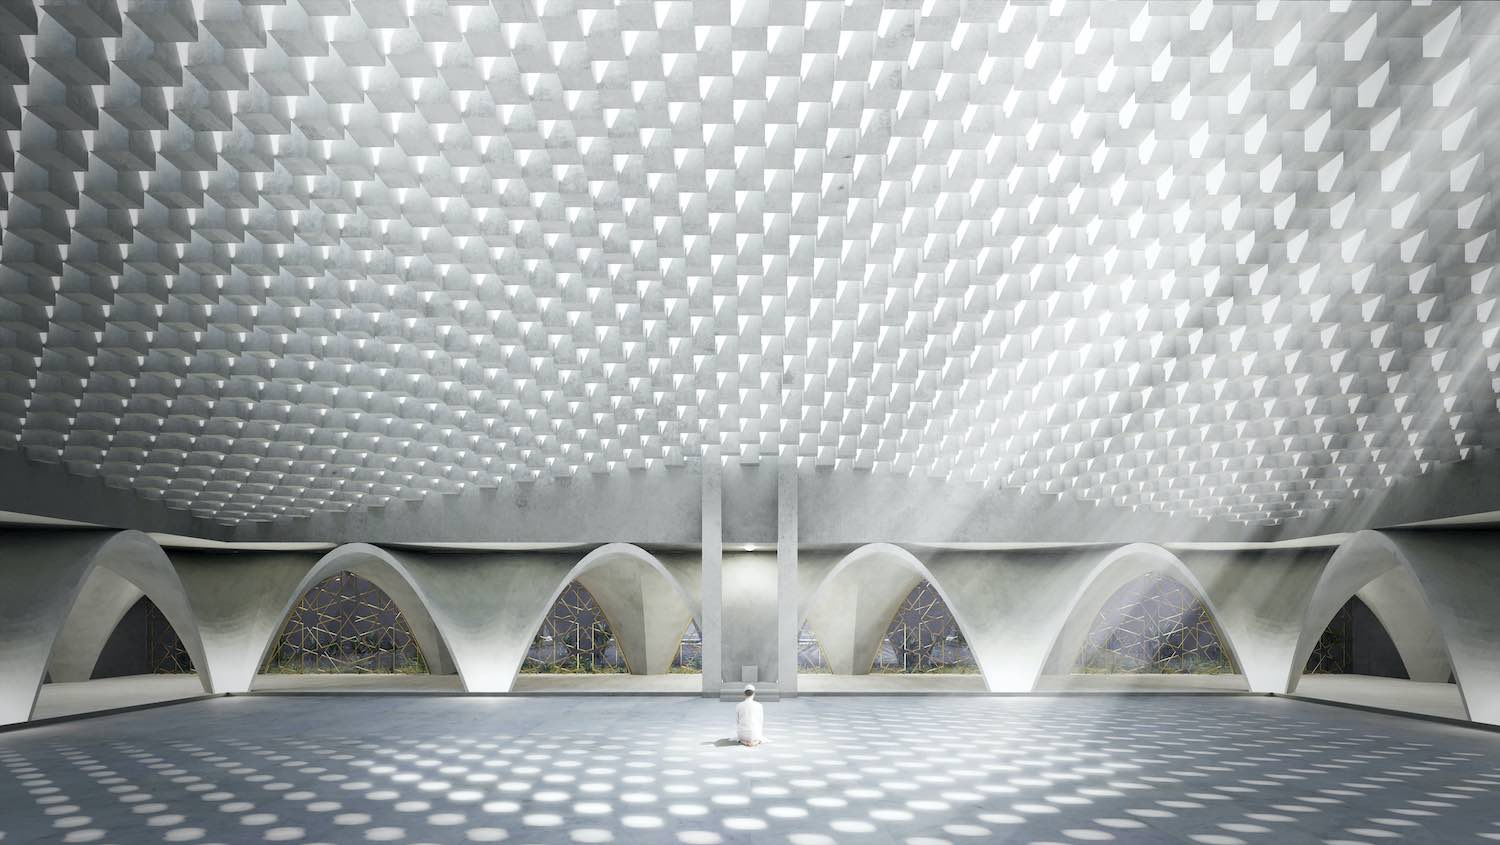 a man praying inside a modern mosque with parametric roof